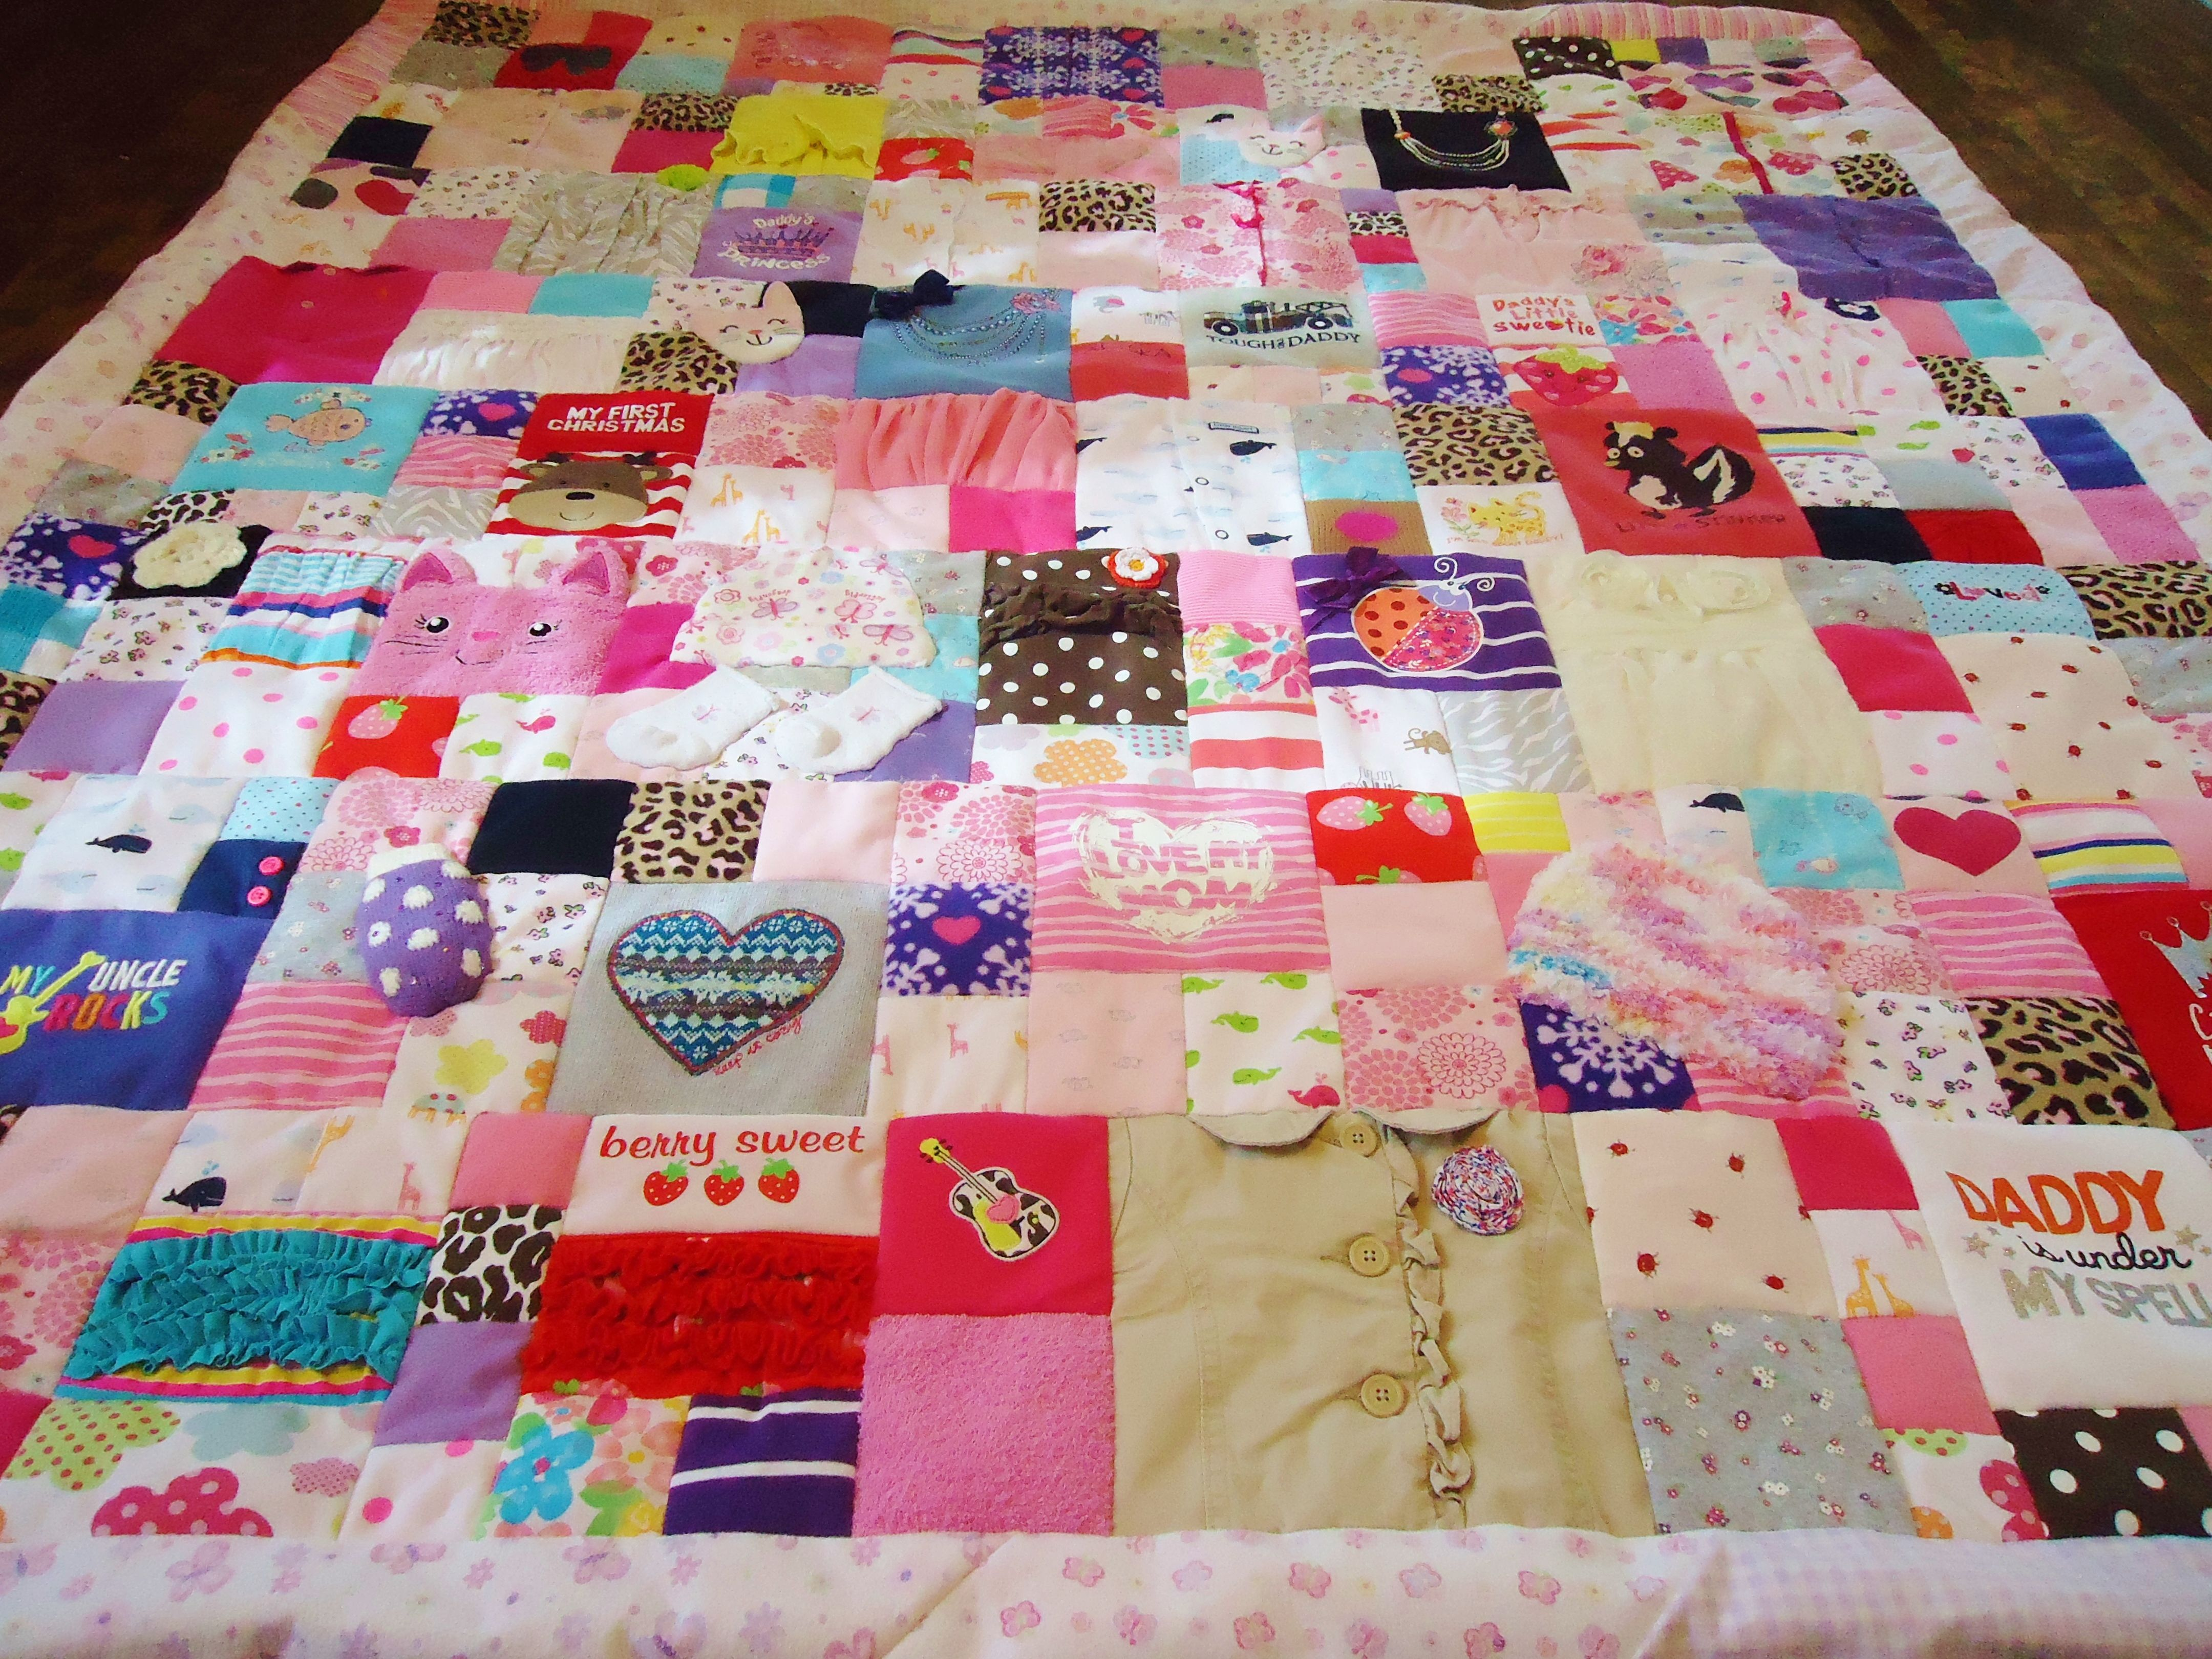 Baby clothes quilt by Lux Keepsake Quilts | Lux Keepsake Quilts ... : keep sake quilting - Adamdwight.com